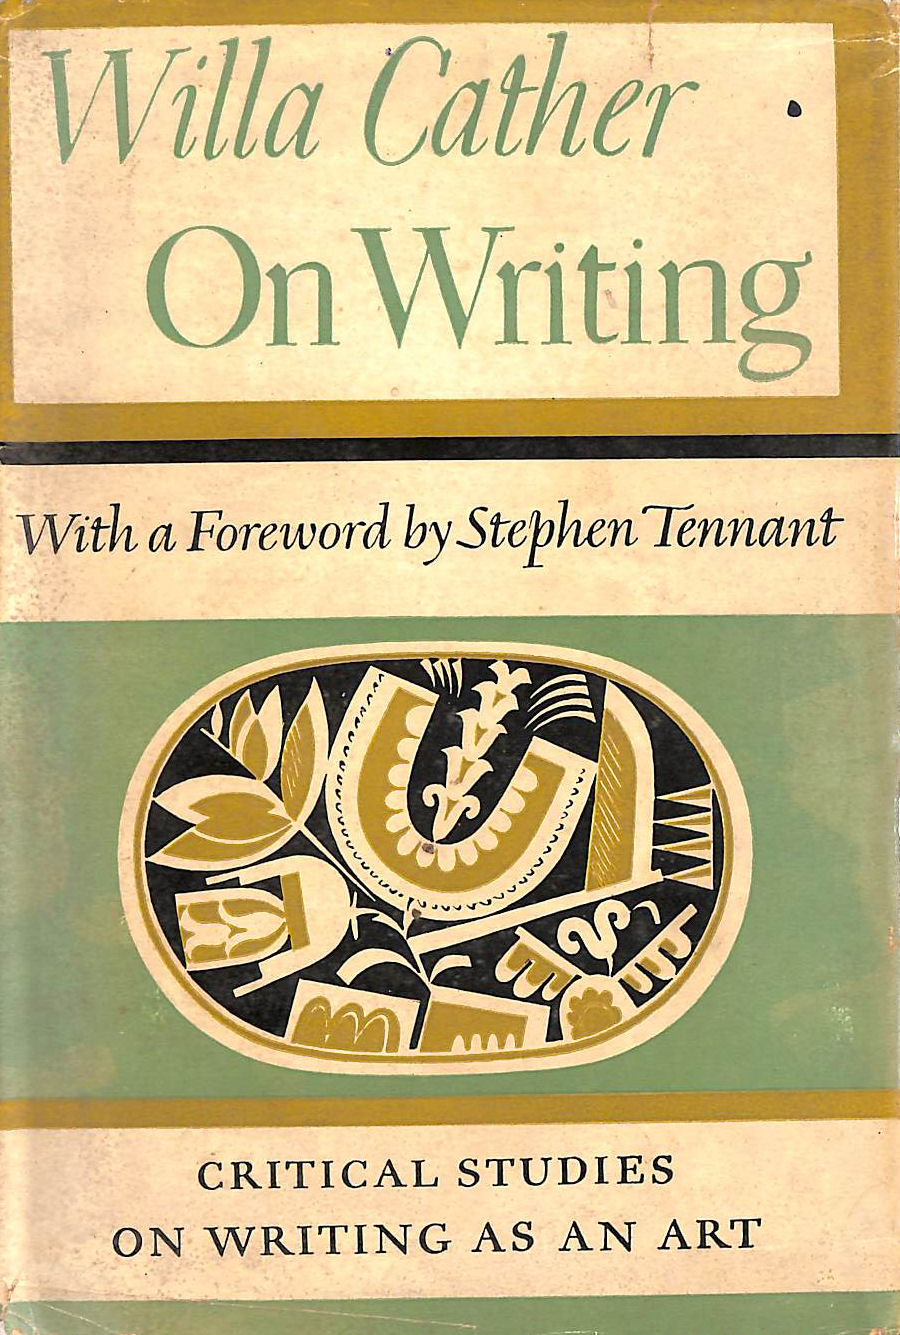 Image for On writing: Critical studies on writing as an art